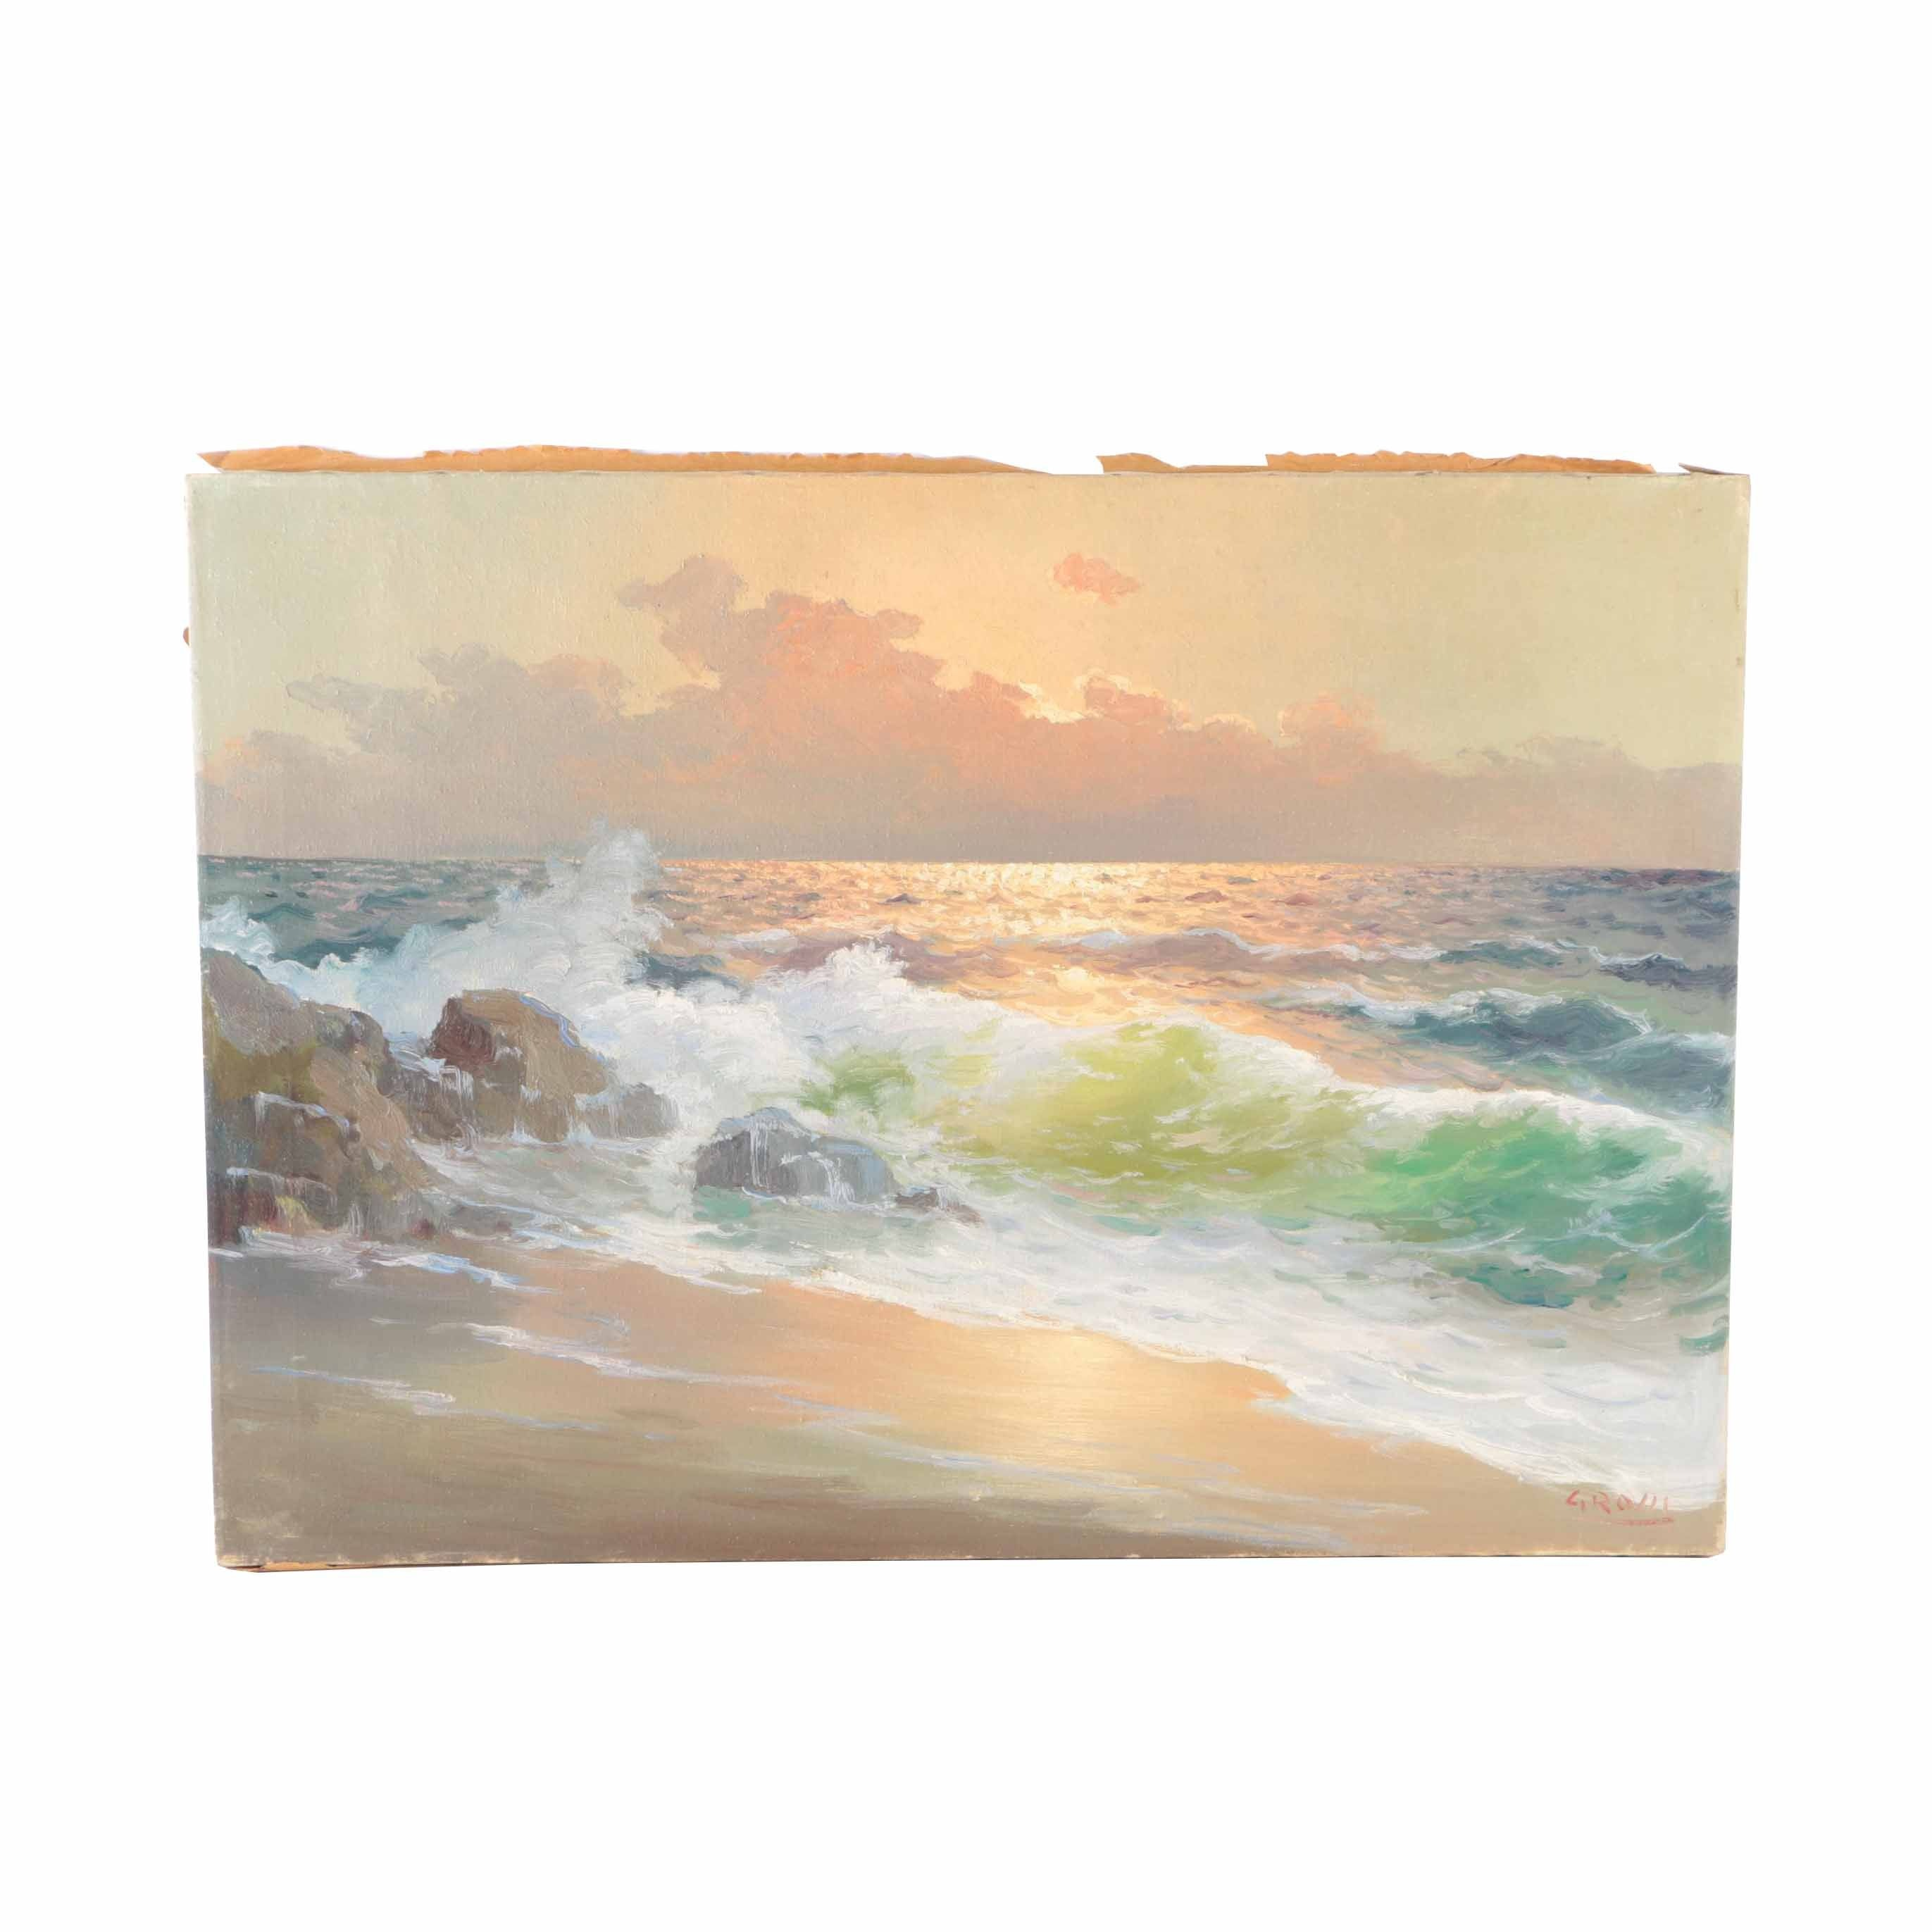 Giuseppe Rossi Oil Painting on Canvas Seascape